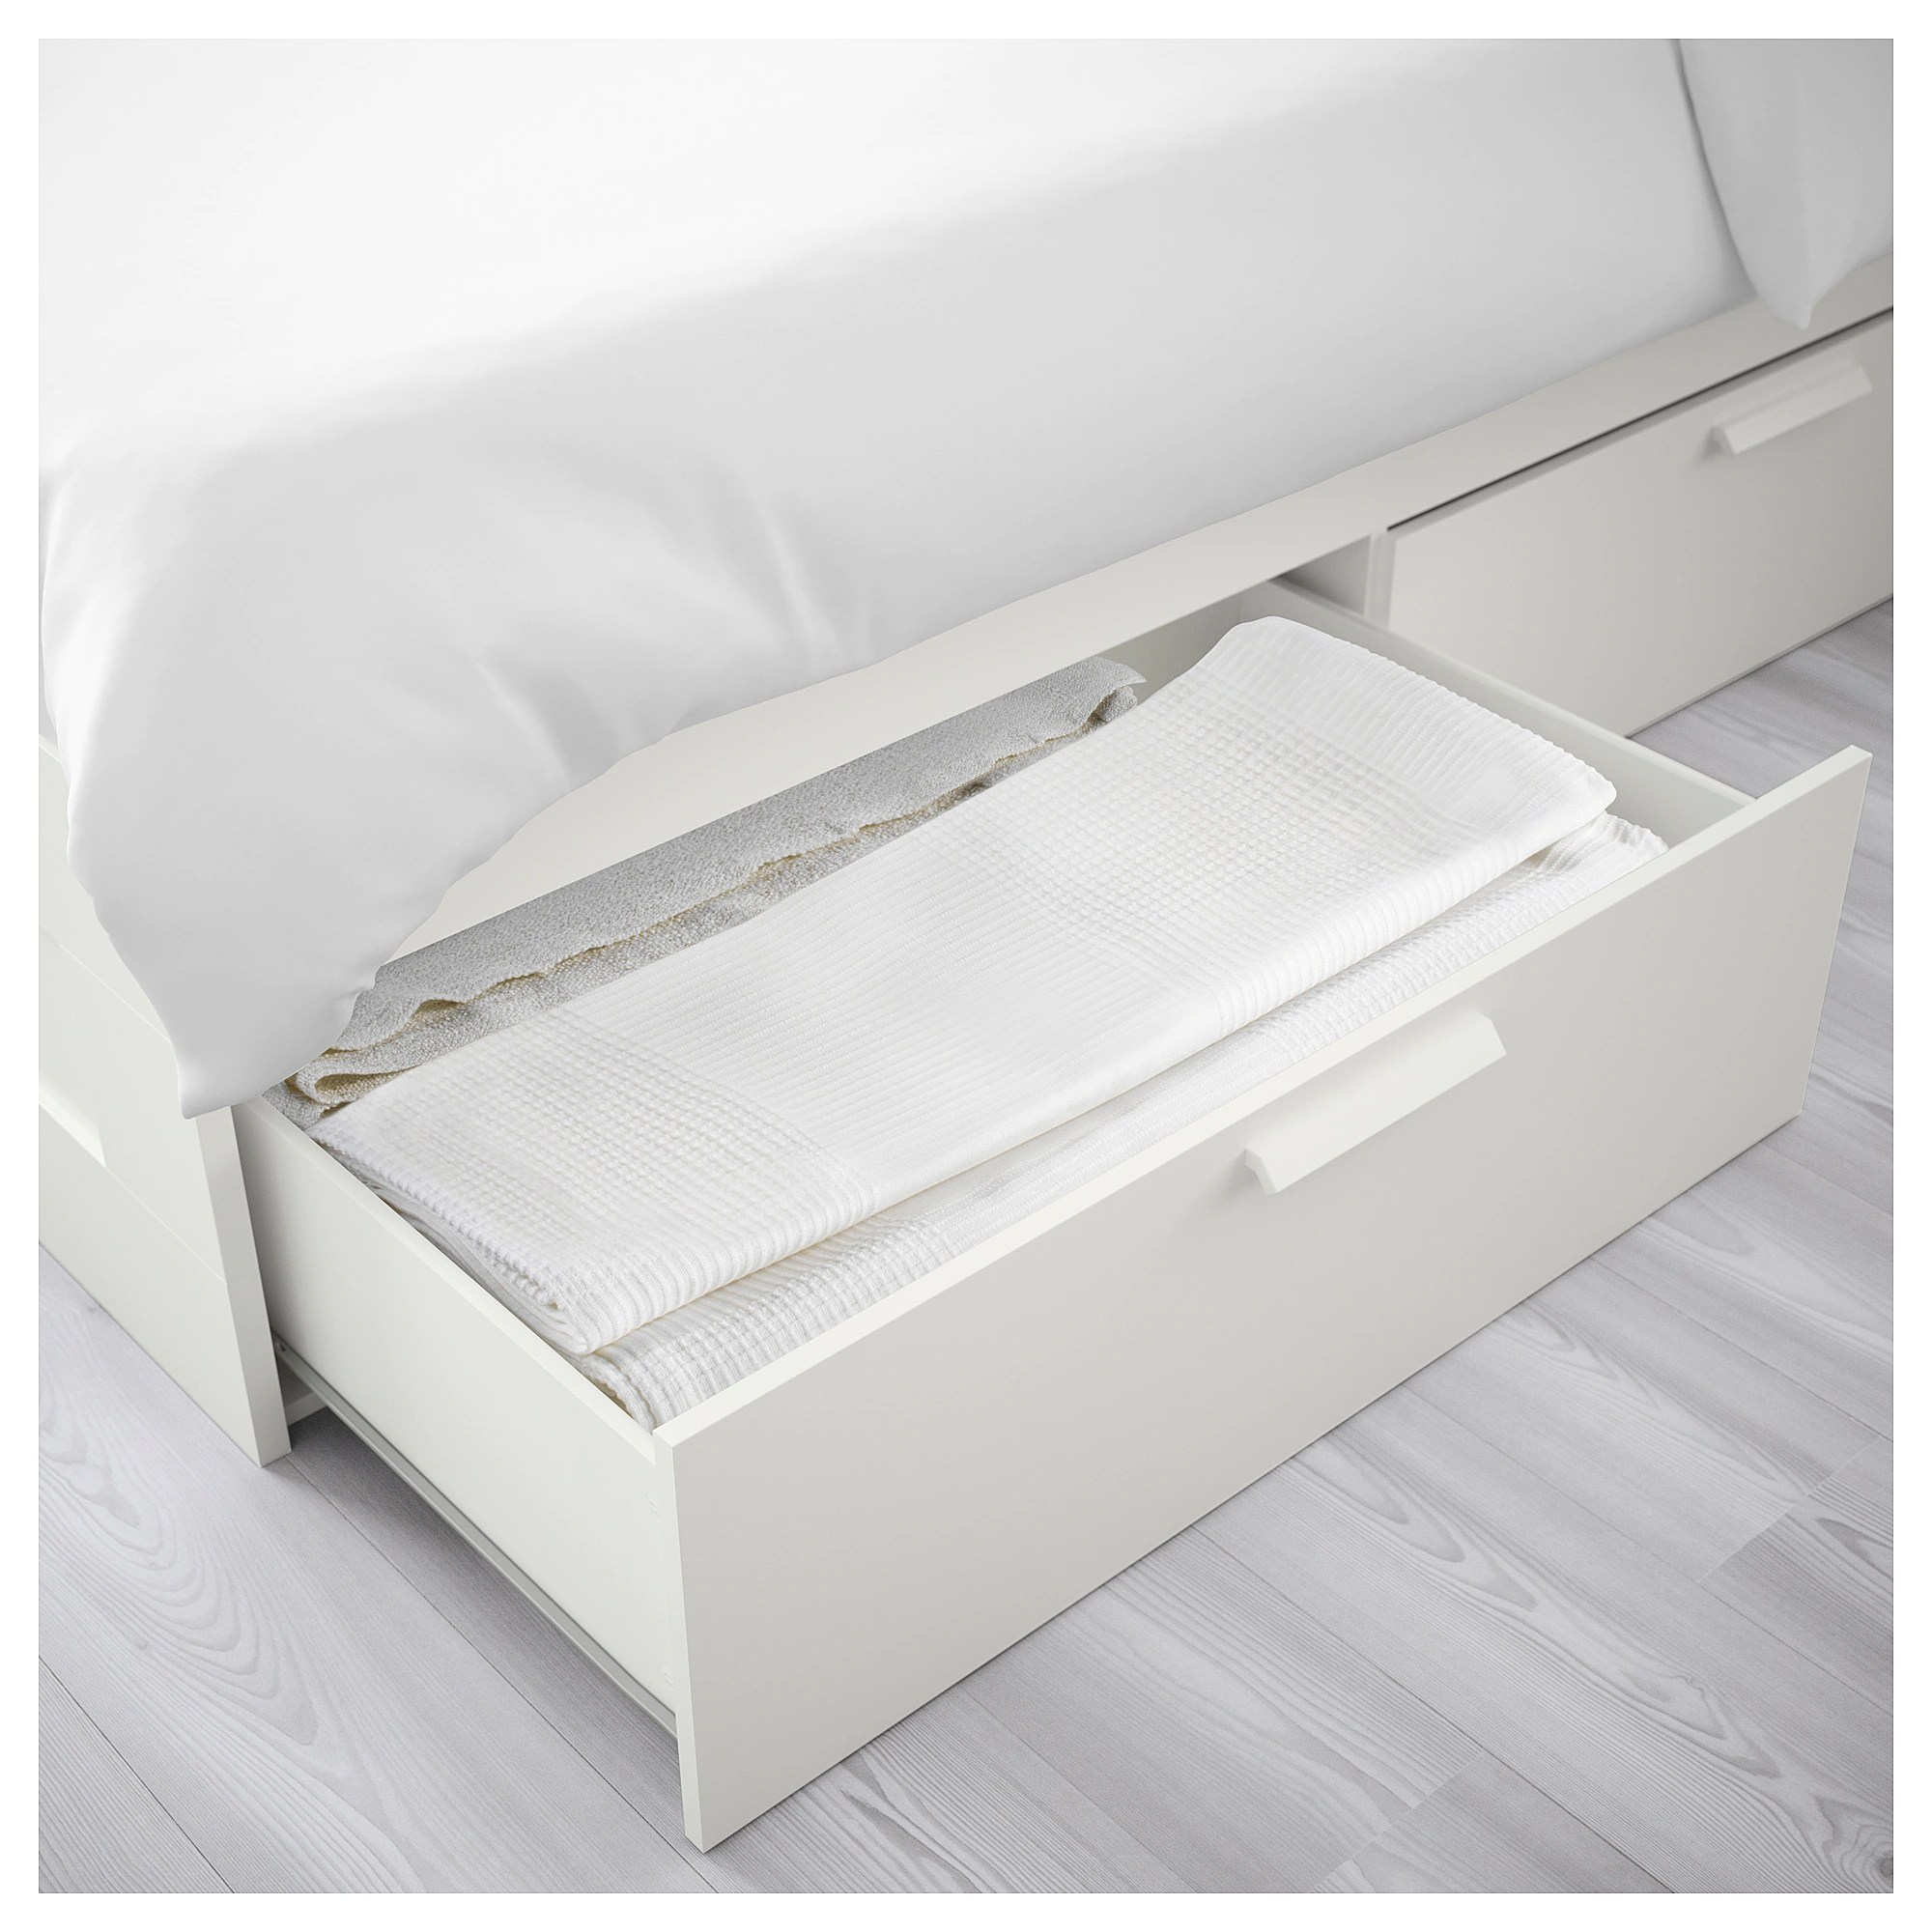 Ikea Brimnes Bett 160x200 Brimnes Bed Frame With Storage White Luröy